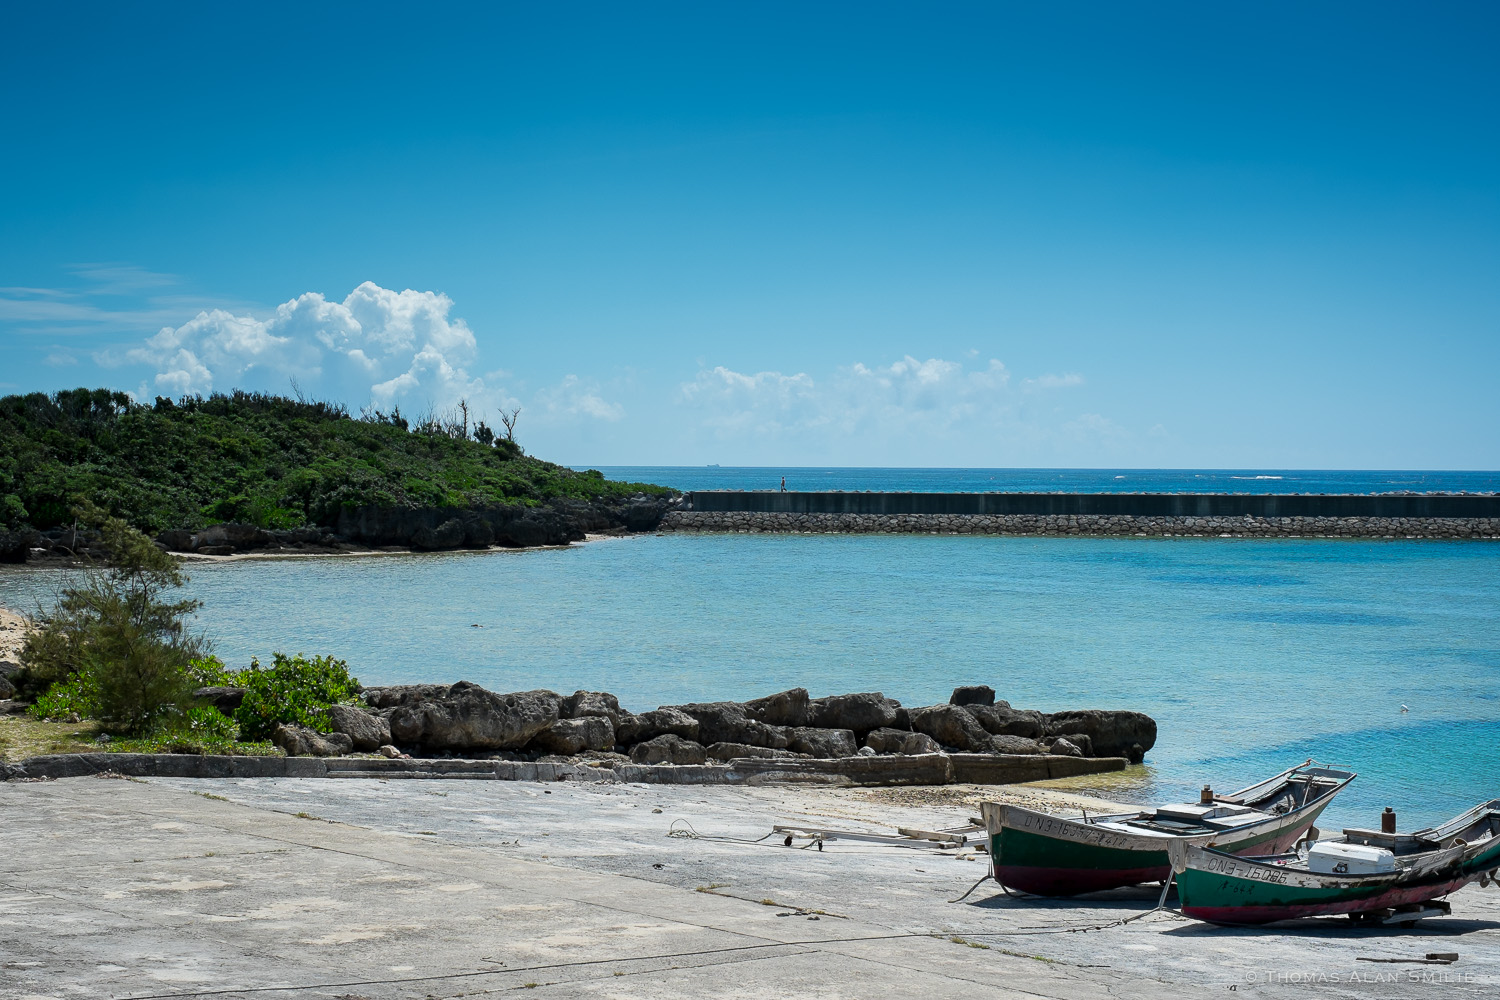 Small fishing port on the east side of the island. Fuji X-Pro1, 35mm f1.4.